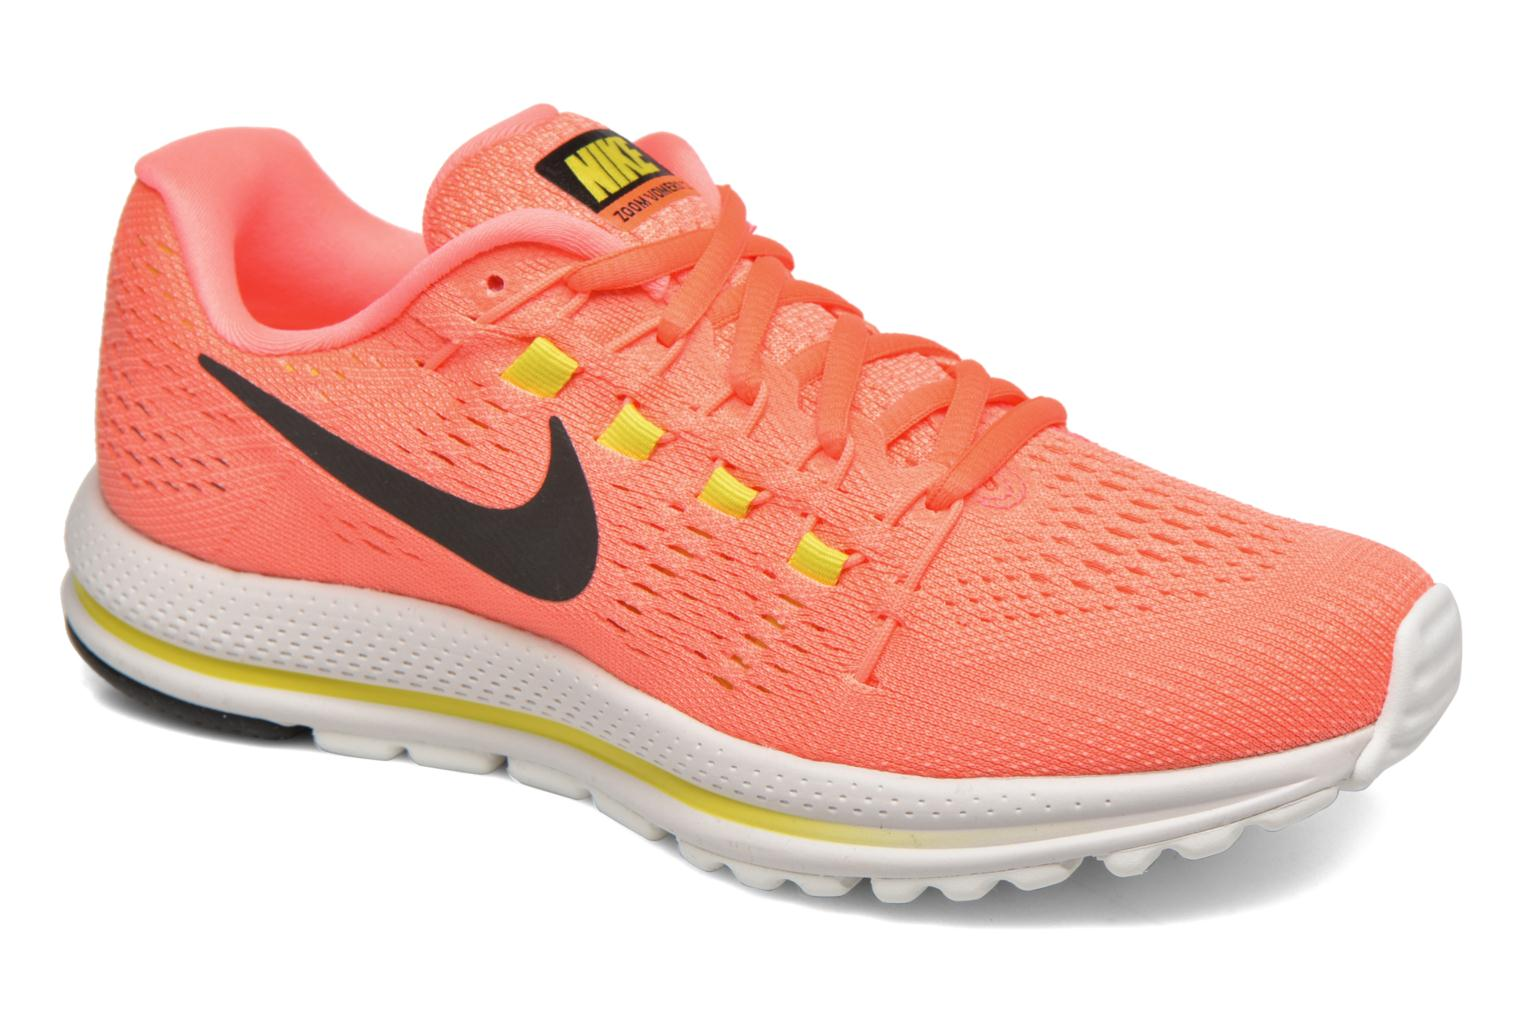 Marques Chaussure femme Nike femme Wmns Nike Air Zoom Vomero 12 Hot Punch/Black-Lava Glow-Electrolime